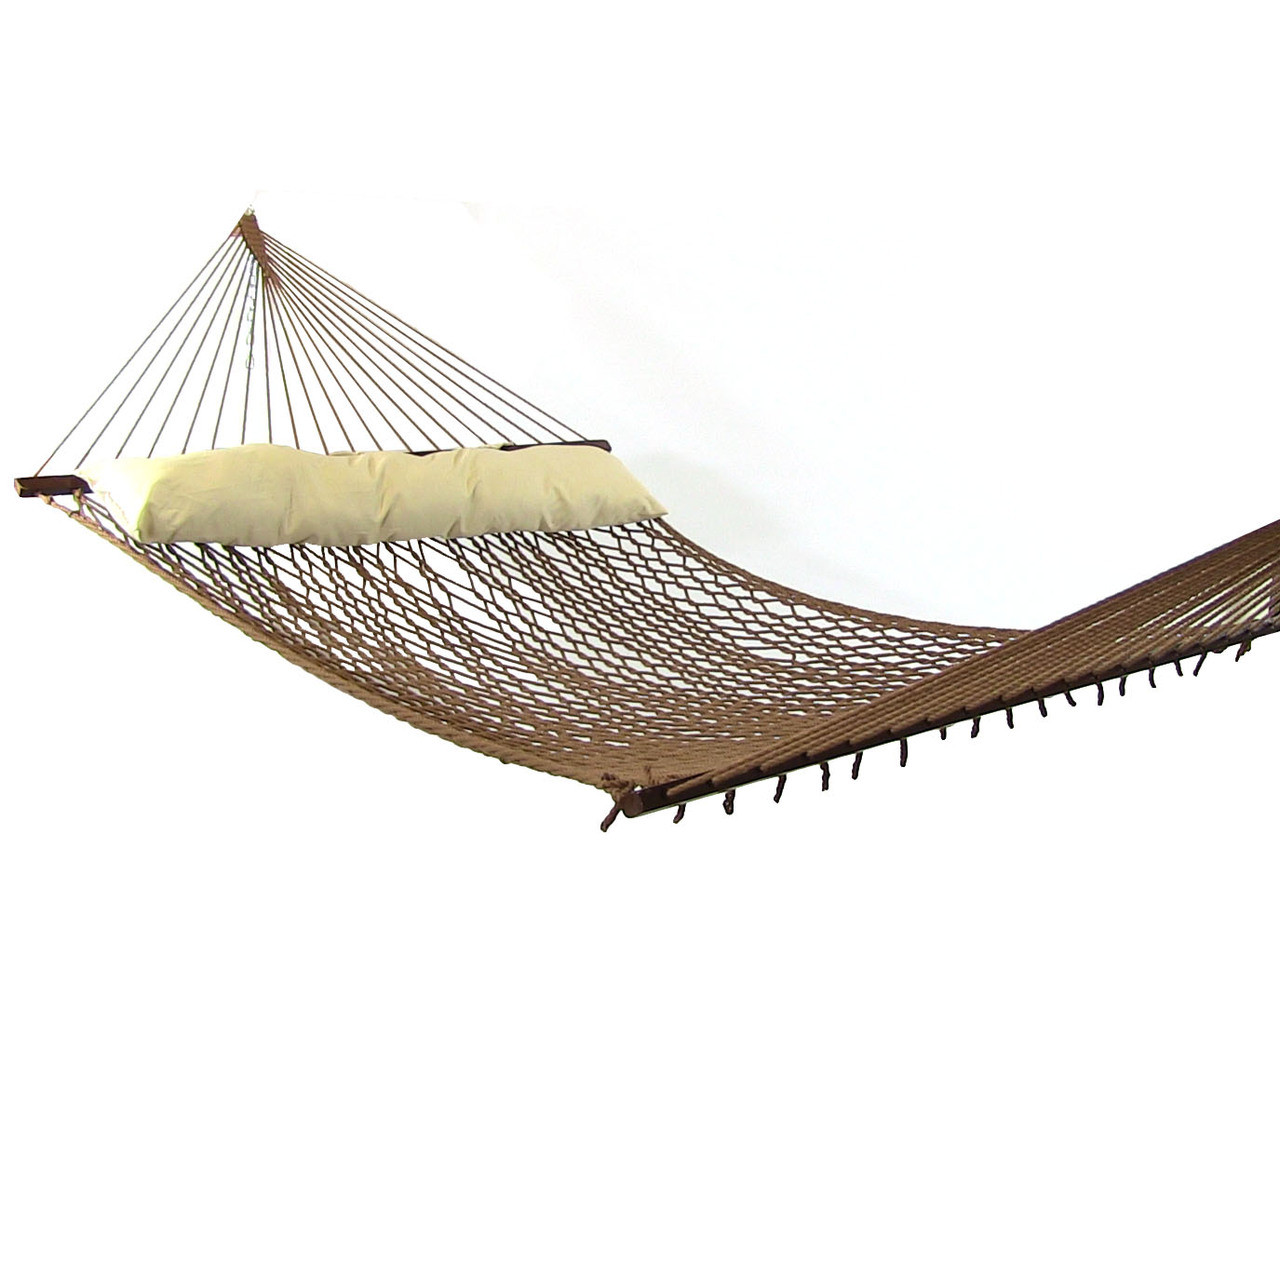 Sunnydaze Polyester Rope Hammock Spreader Bars Pillow Inch Picture 701